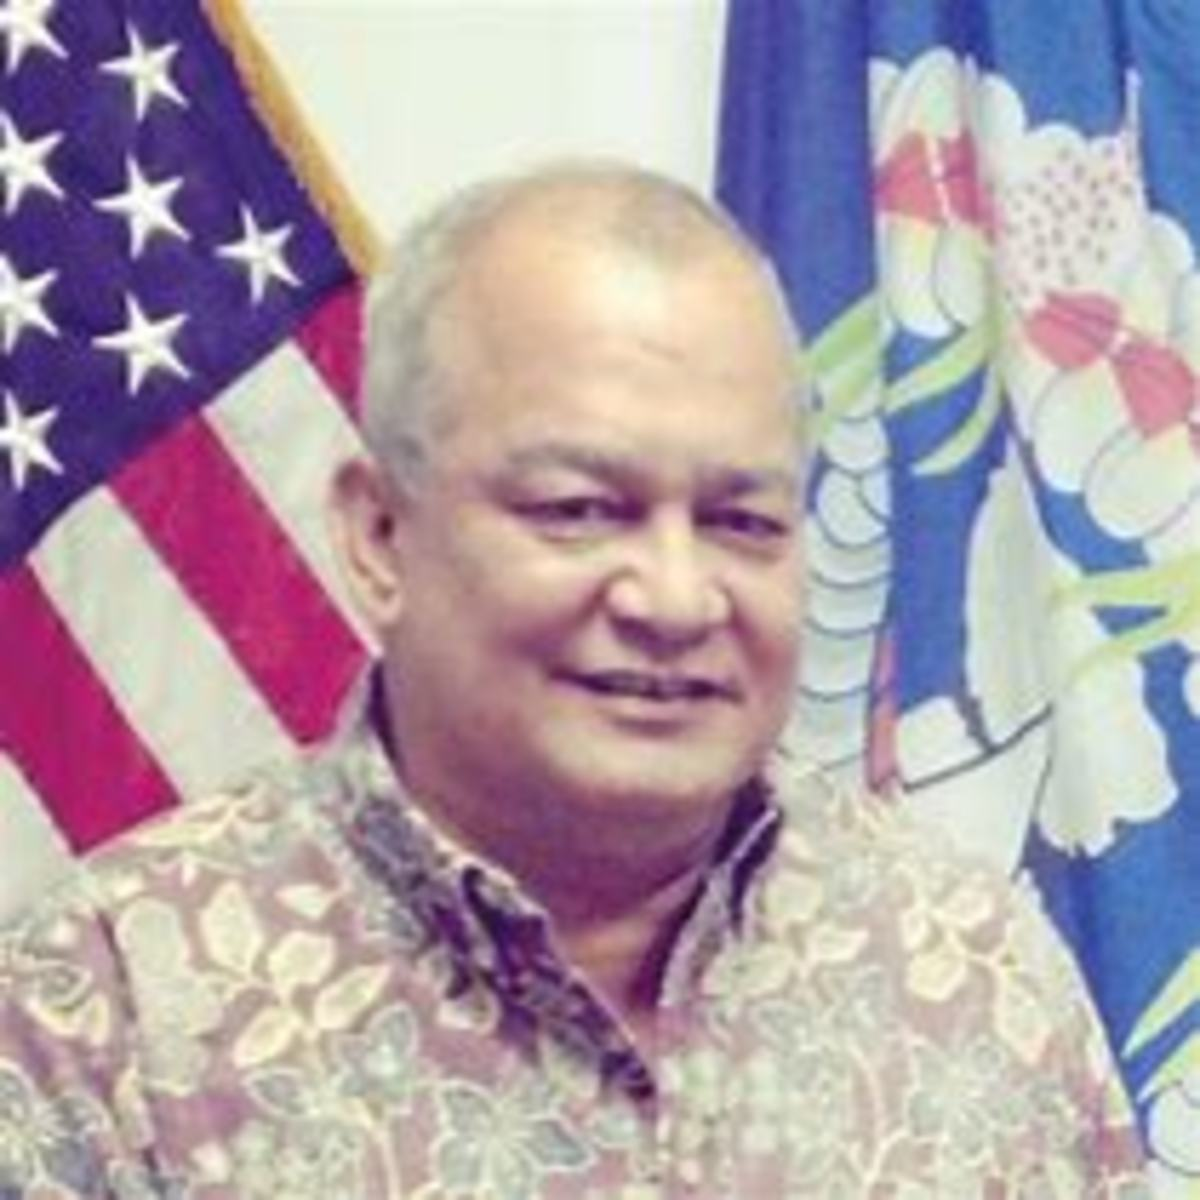 Northern Mariana Islands' Representative Gregorio Sablan